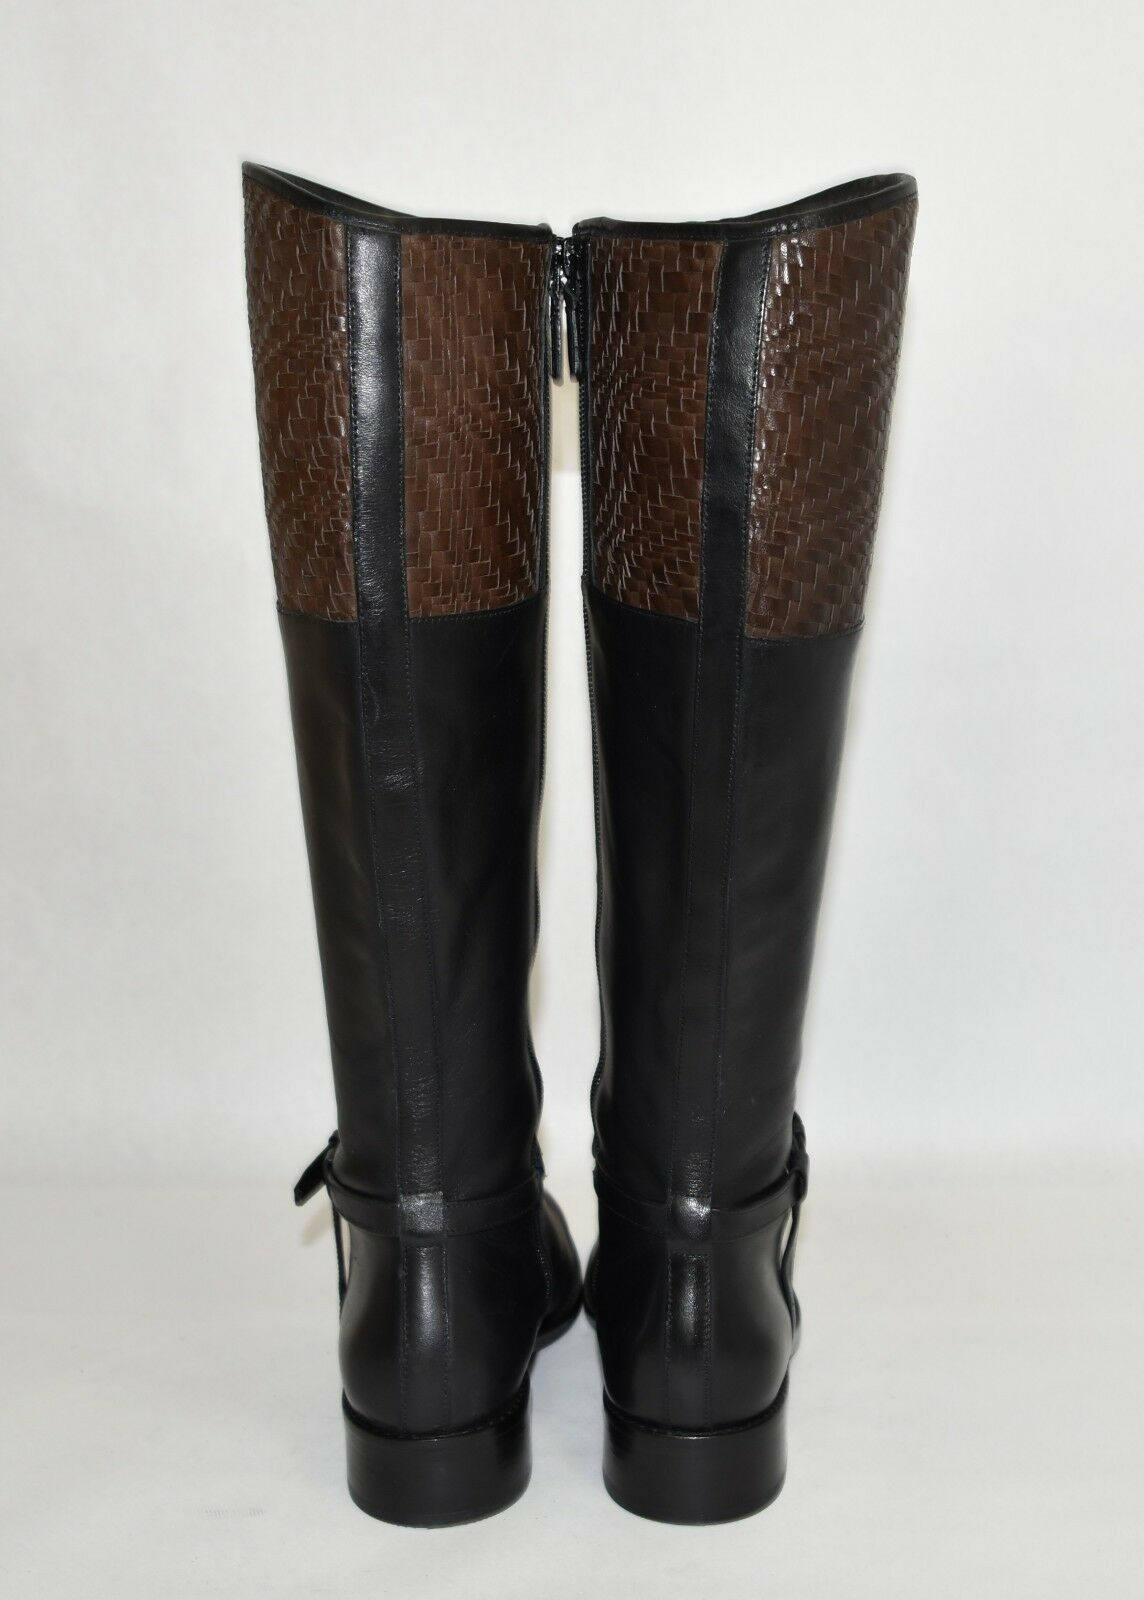 New New New  Cole Haan Genevieve Woven Cuff Riding Boot Black Leather Size 7 w05276 T33 8235b9